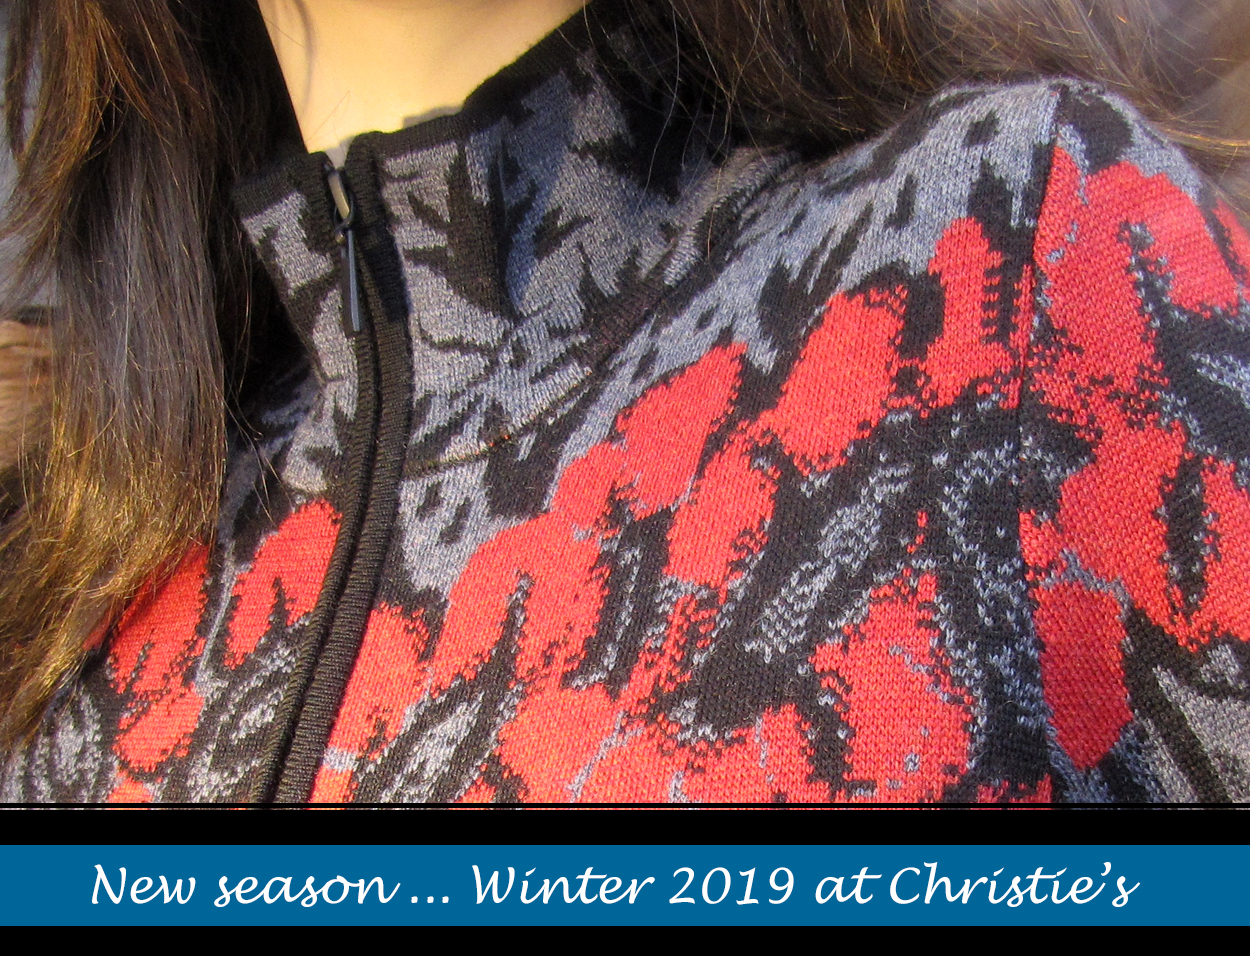 Winter 2019 Ladies fashion from Christie's Clothing in Collingwood